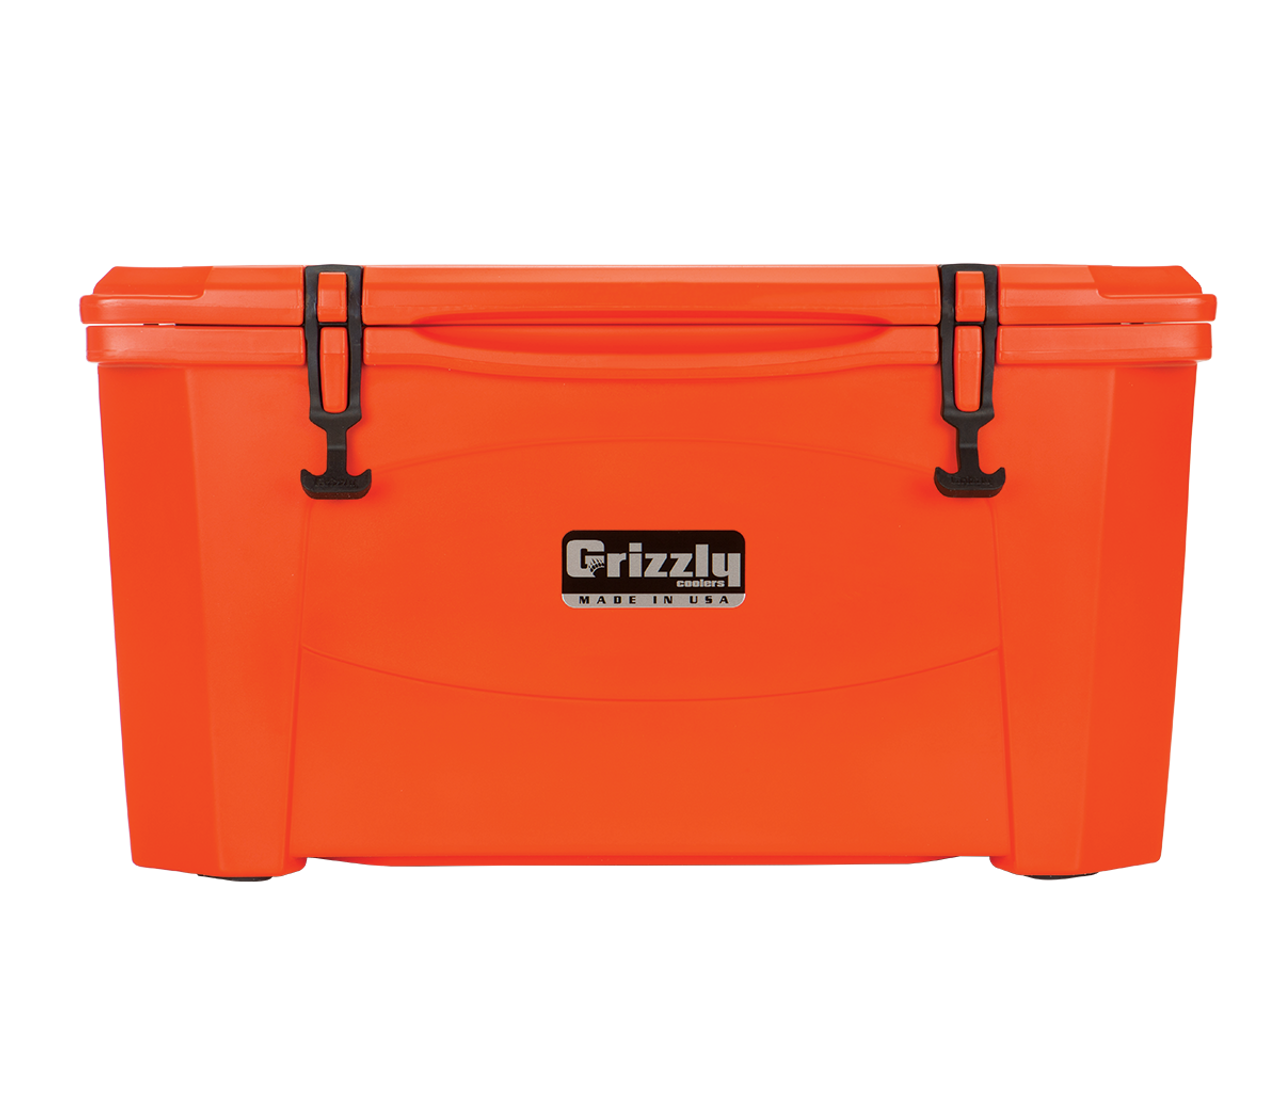 Grizzly 60QT Orange